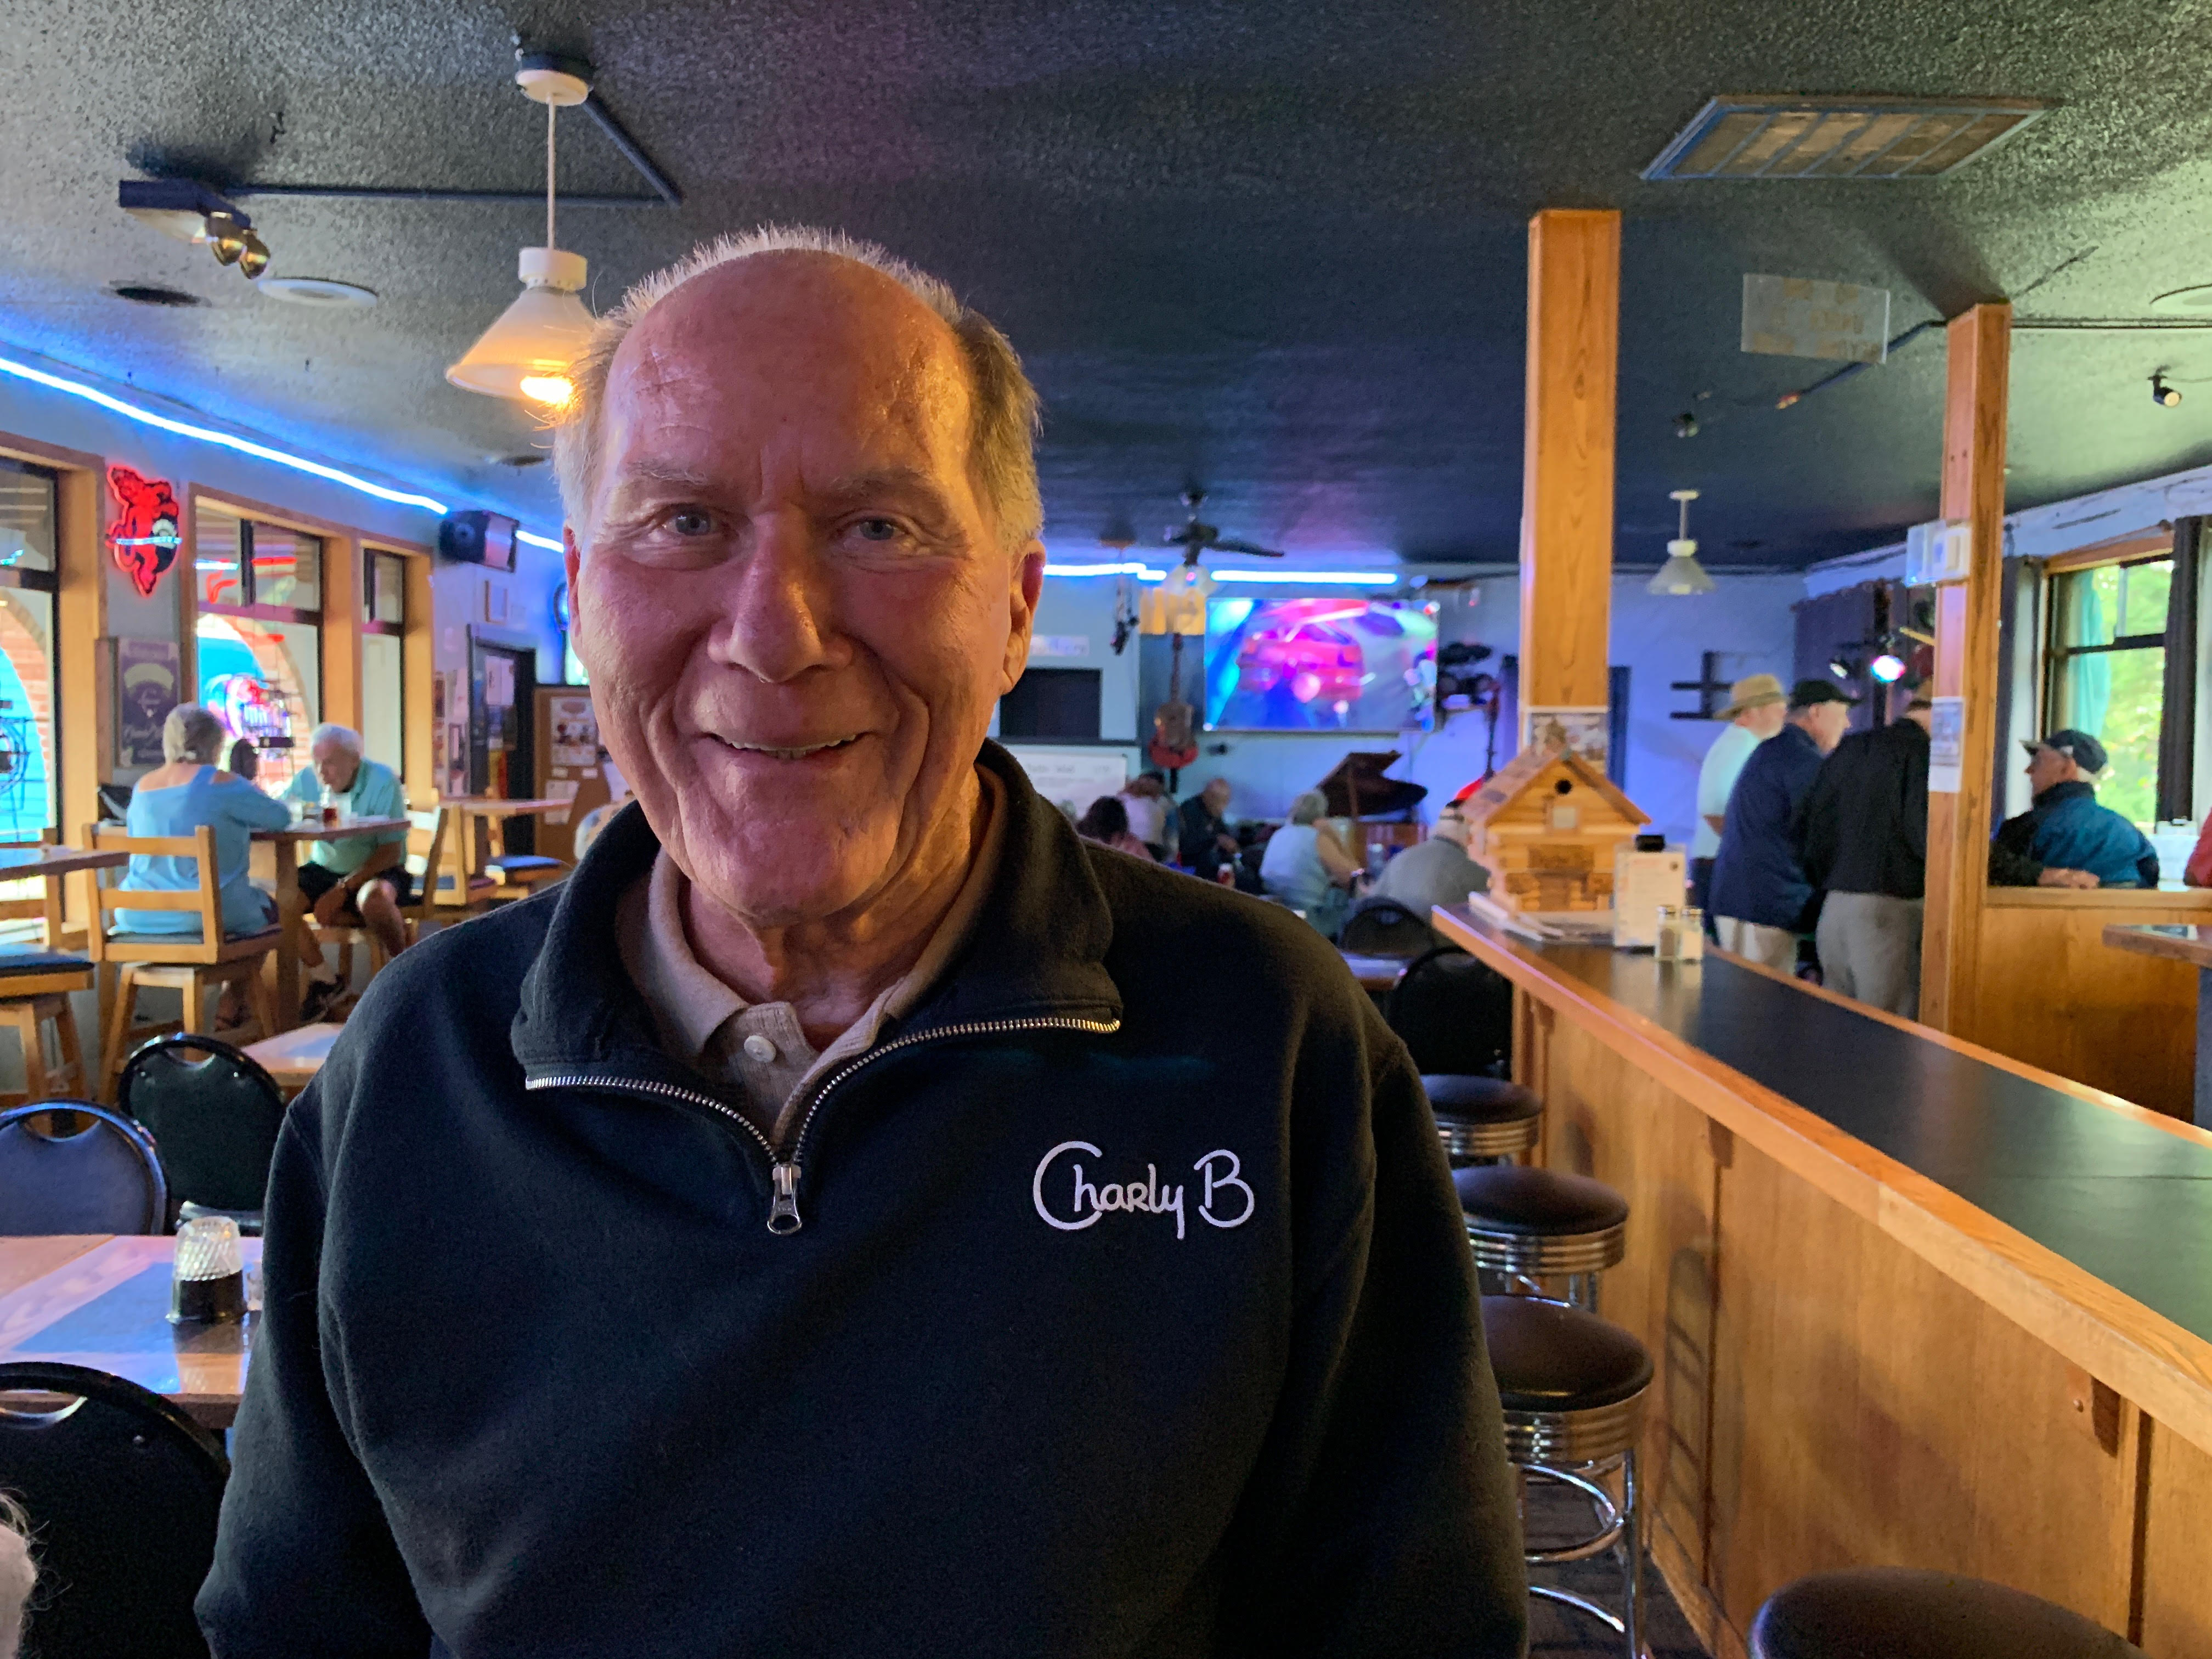 Pictured is Bremertonian Dave Hill, spotted at Brother Don's the other night. He and his wife Nancy Hill own several Charly B sweatshirts.